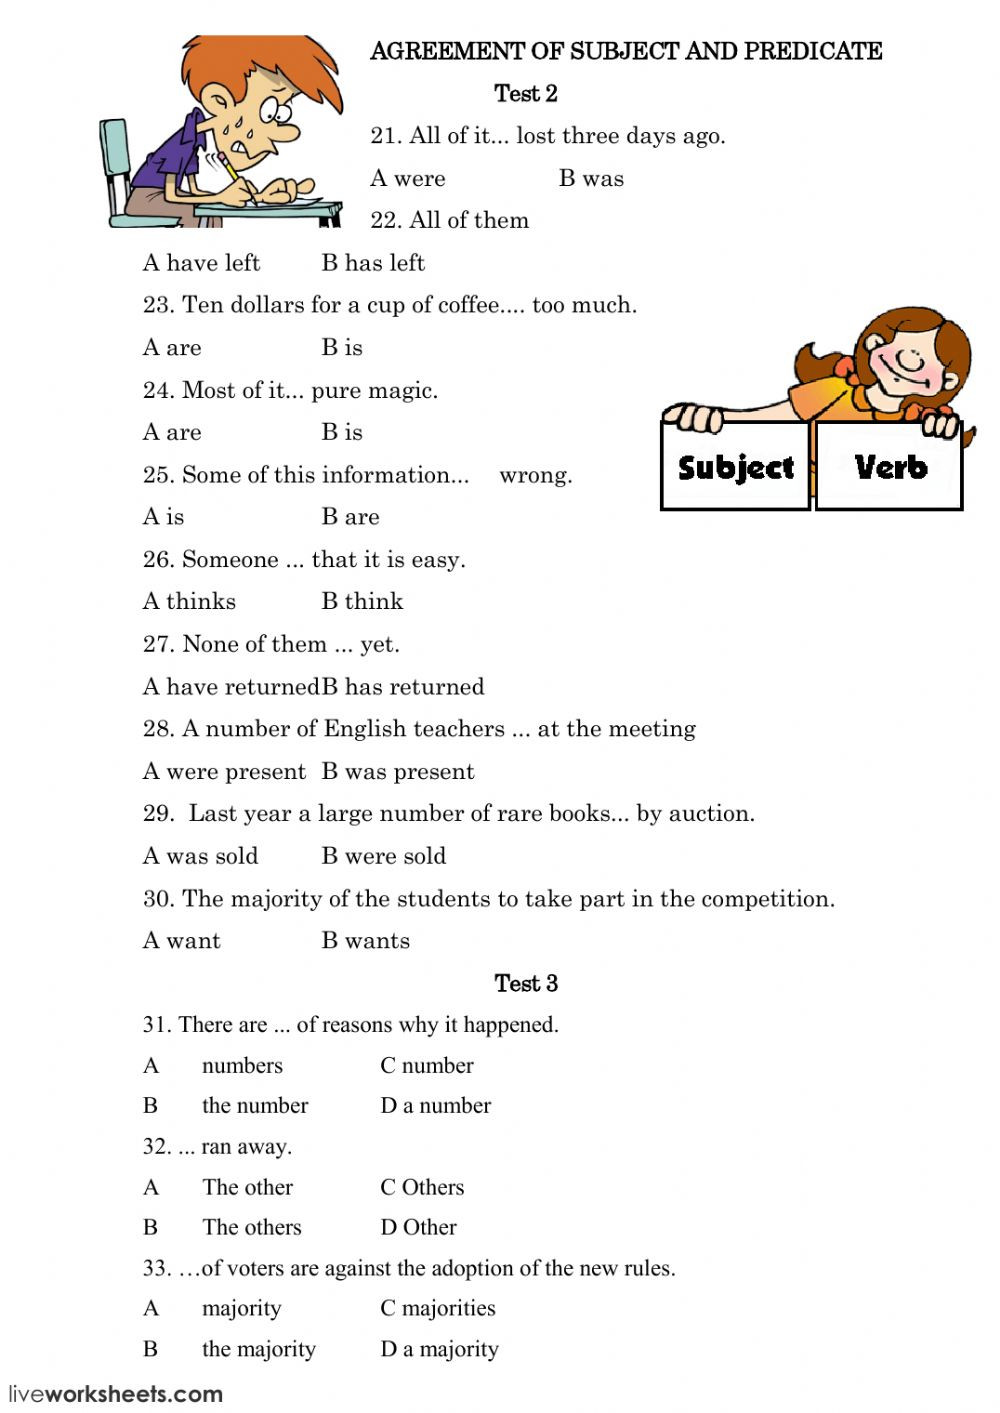 Verbs Worksheets for Middle School 6th Grade Probability theme Worksheets Grade 3 Subject Verb